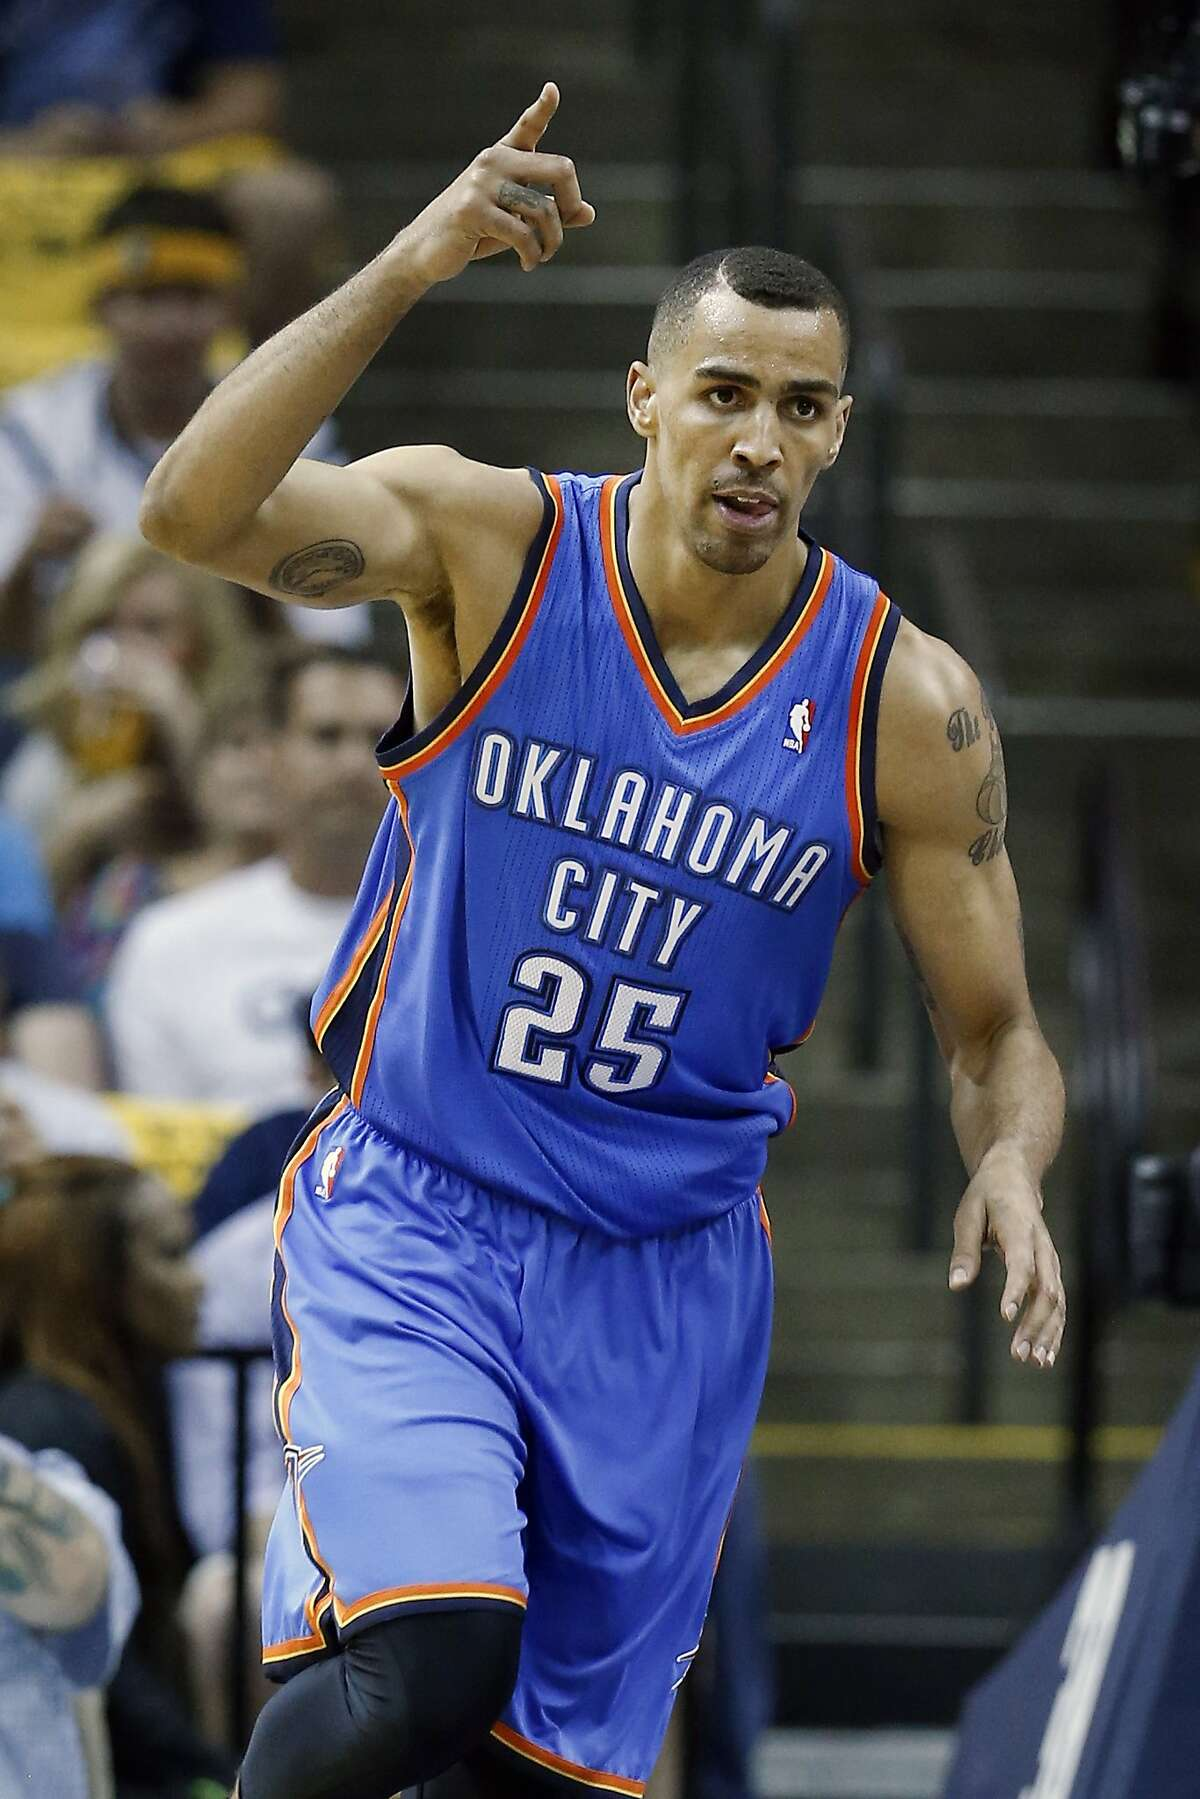 FILE - In this April 24, 2014 file photo, Oklahoma City Thunder guard Thabo Sefolosha celebrates after scoring against the Memphis Grizzlies in the first half of Game 3 of an opening-round NBA basketball playoff series game in Memphis, Tenn. The Atlanta Hawks have reached an agreement with small forward Thabo Sefolosha on a deal that leaves the team sufficient salary cap room for additional offseason moves. The Hawks and Sefolosha have agreed to a three-year, $12 million contract, a person with knowledge of the deal said Friday, July 4, 2014. The person spoke to The Associated Press on condition of anonymity because teams can't officially sign free agents until the NBA's moratorium on deals is lifted on Thursday. (AP Photo/Mark Humphrey, File)